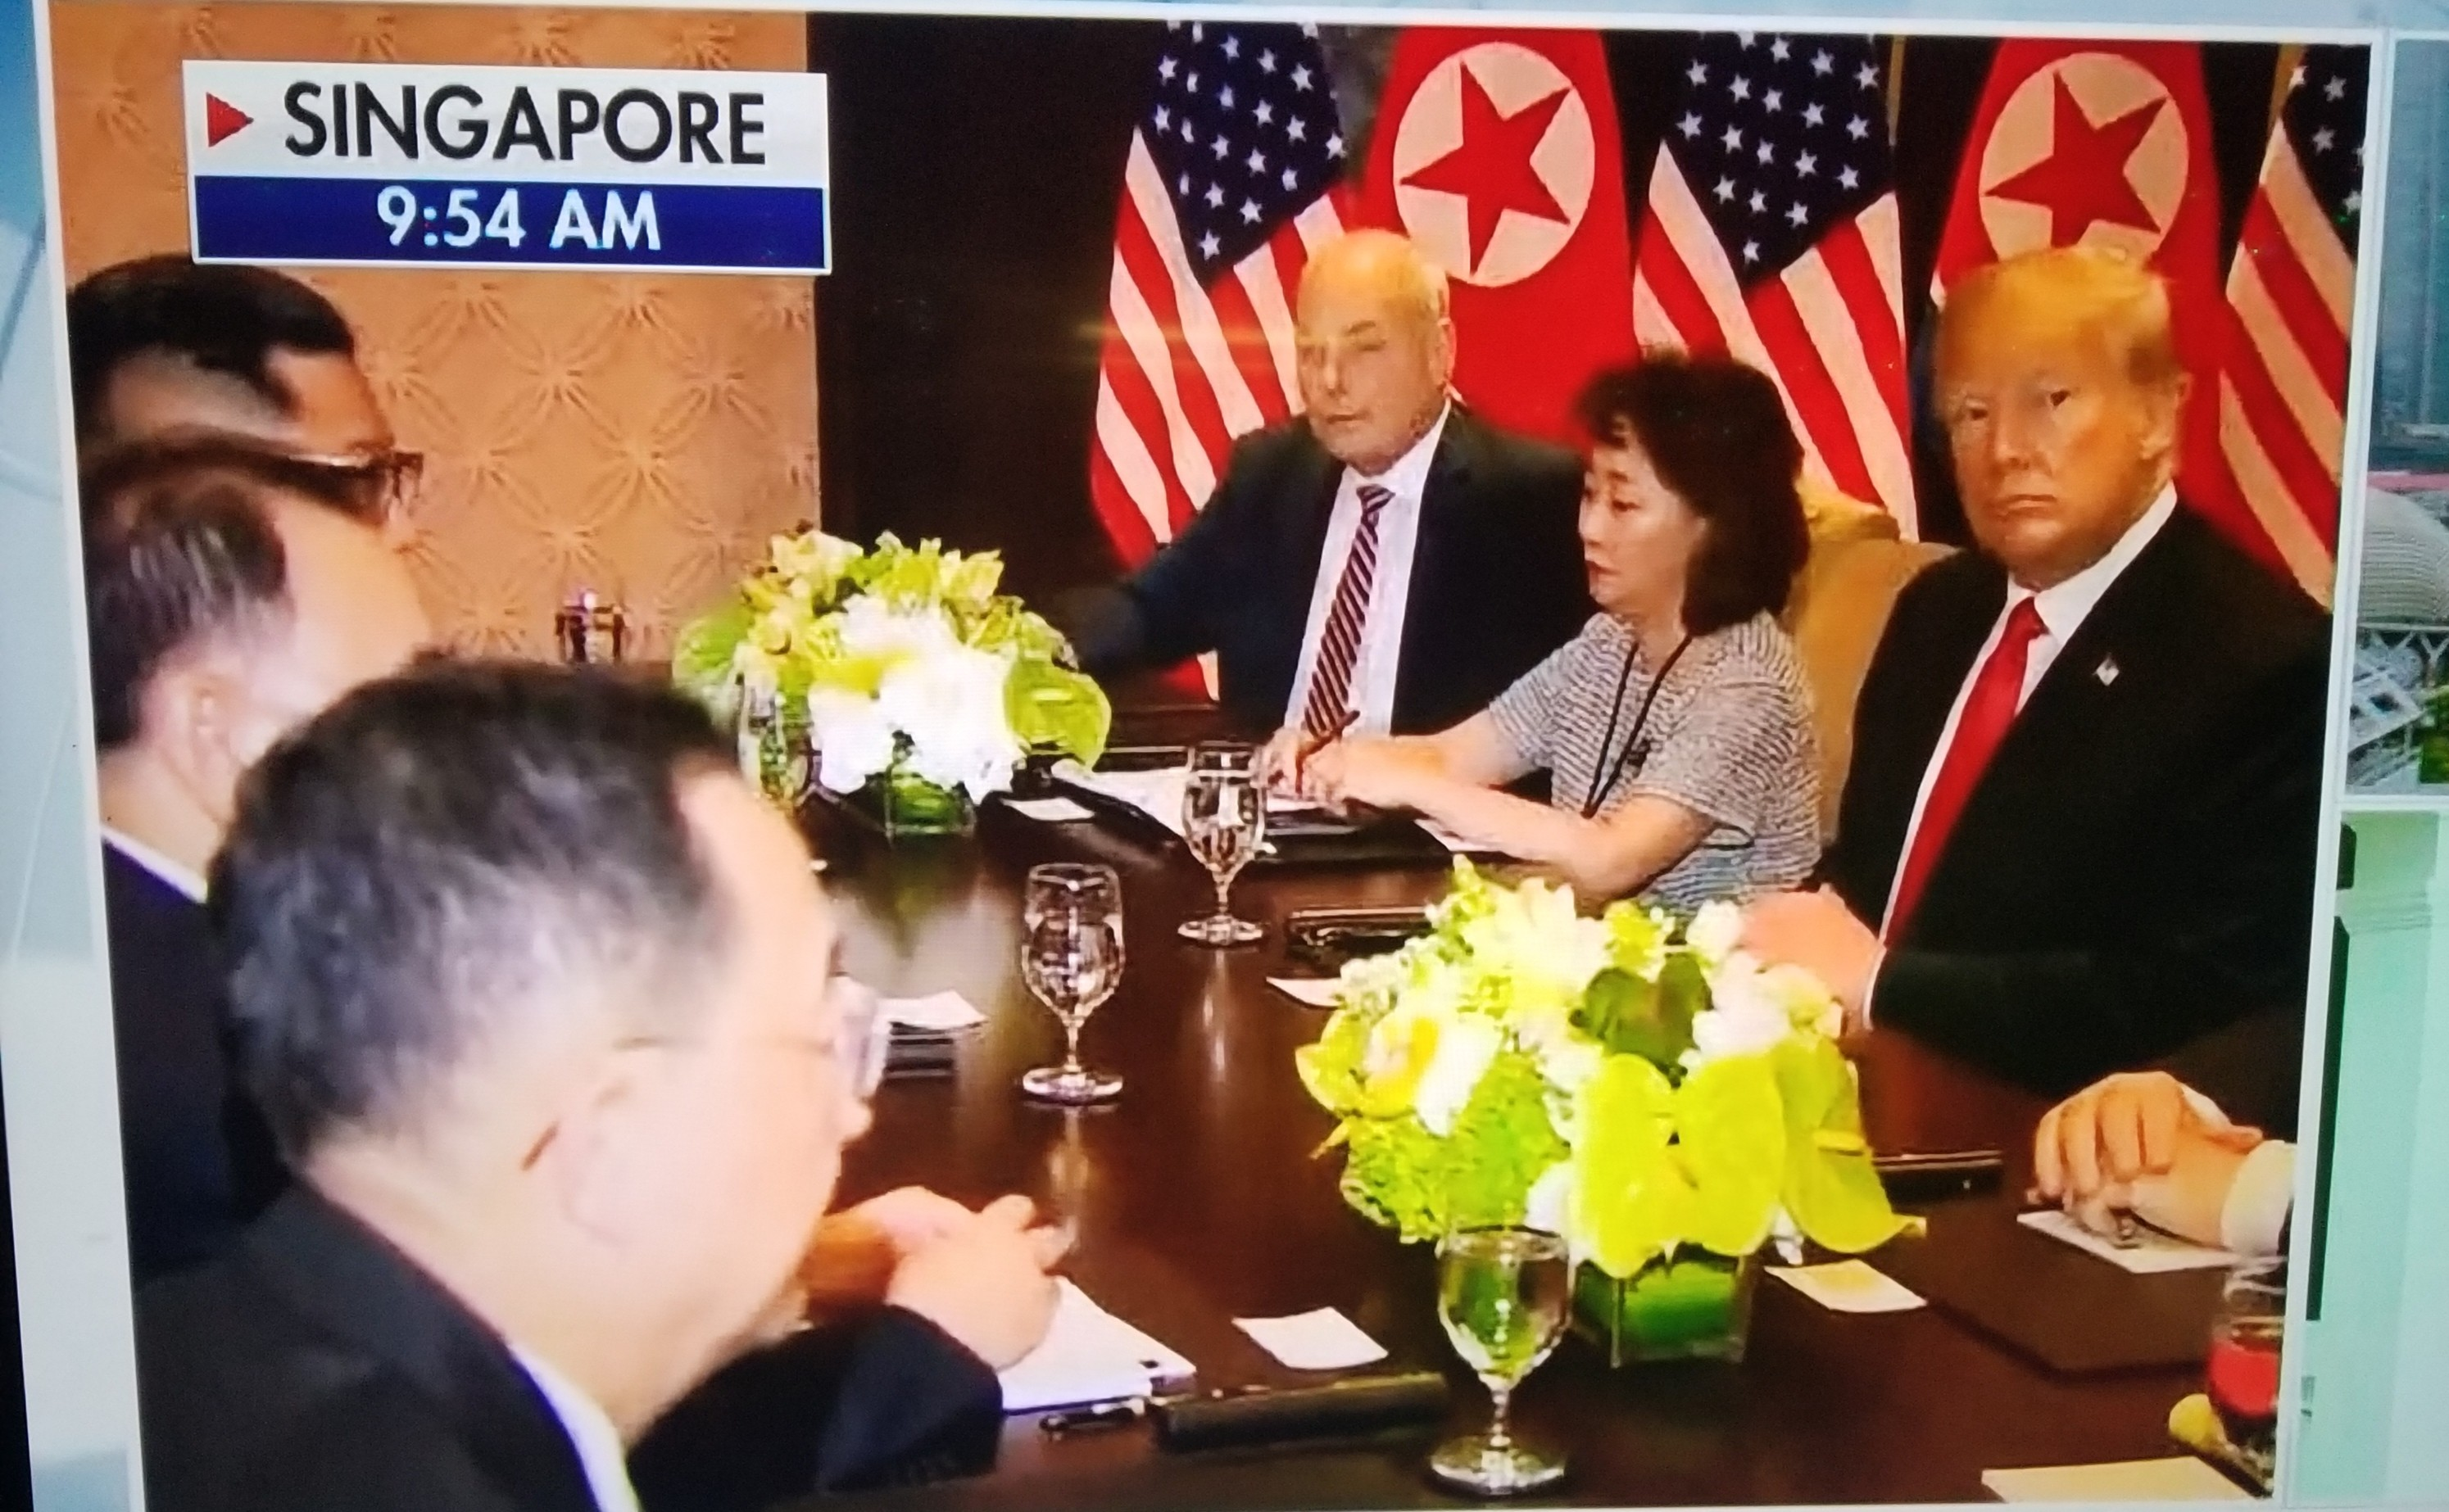 Breaking News: History is made as Donald Trump and Kim Jong Un meet for their summit in Singapore